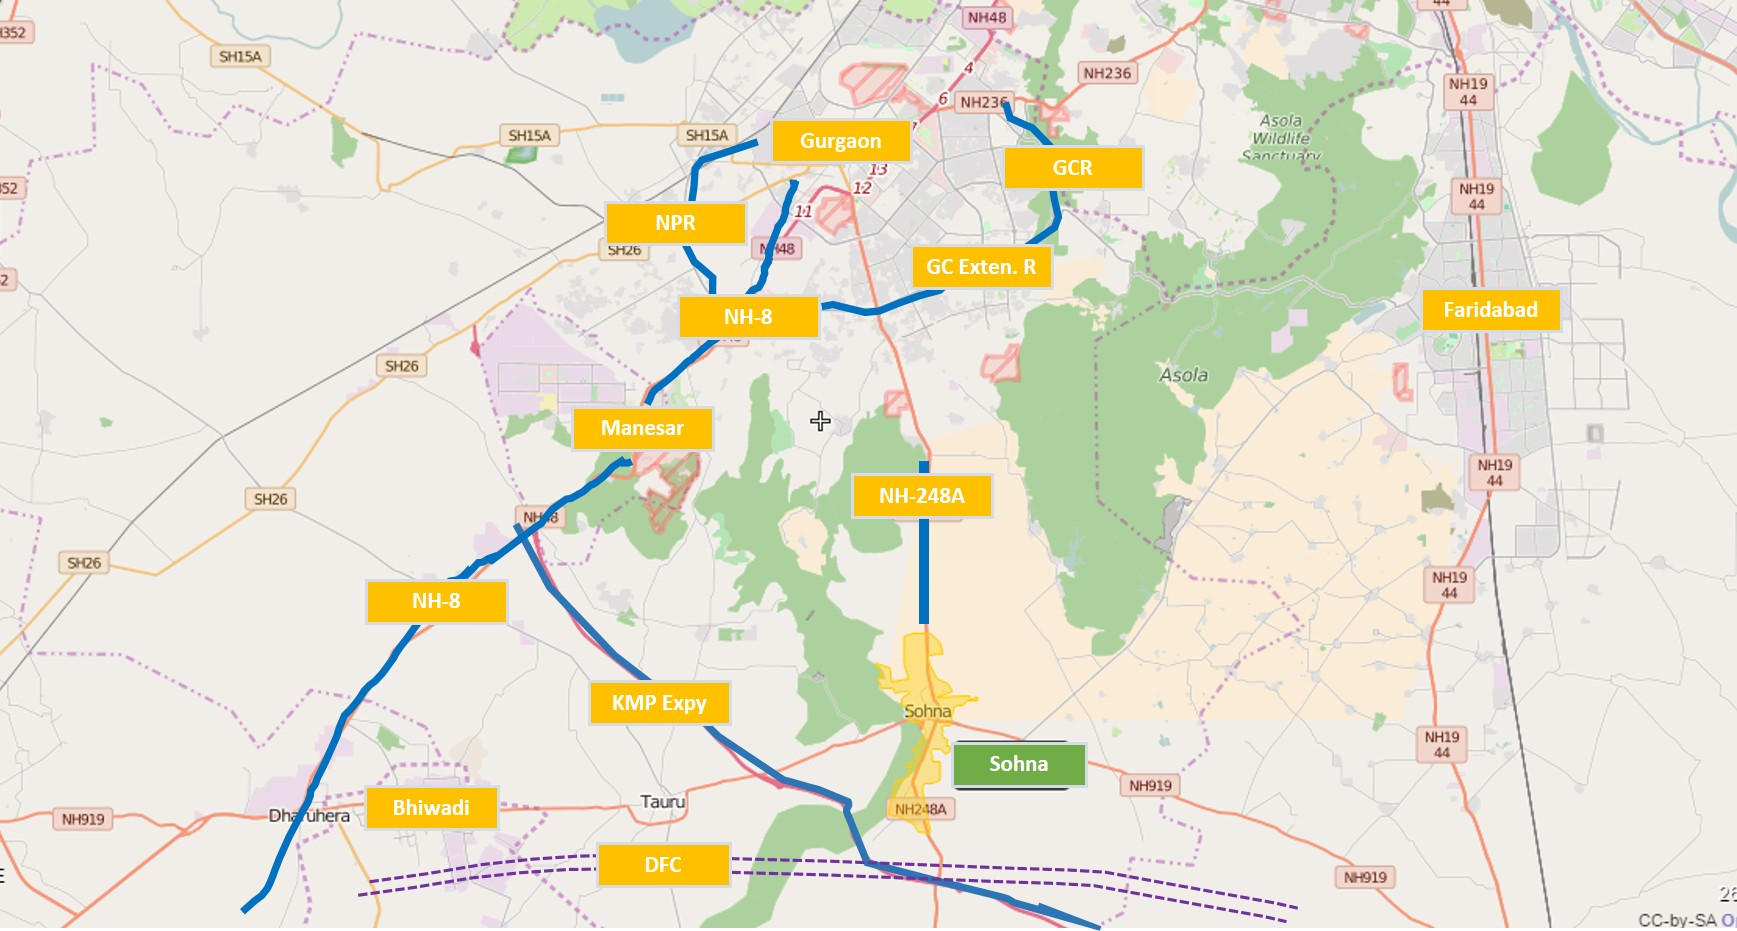 South of Gurgaon - Location and Connectivity